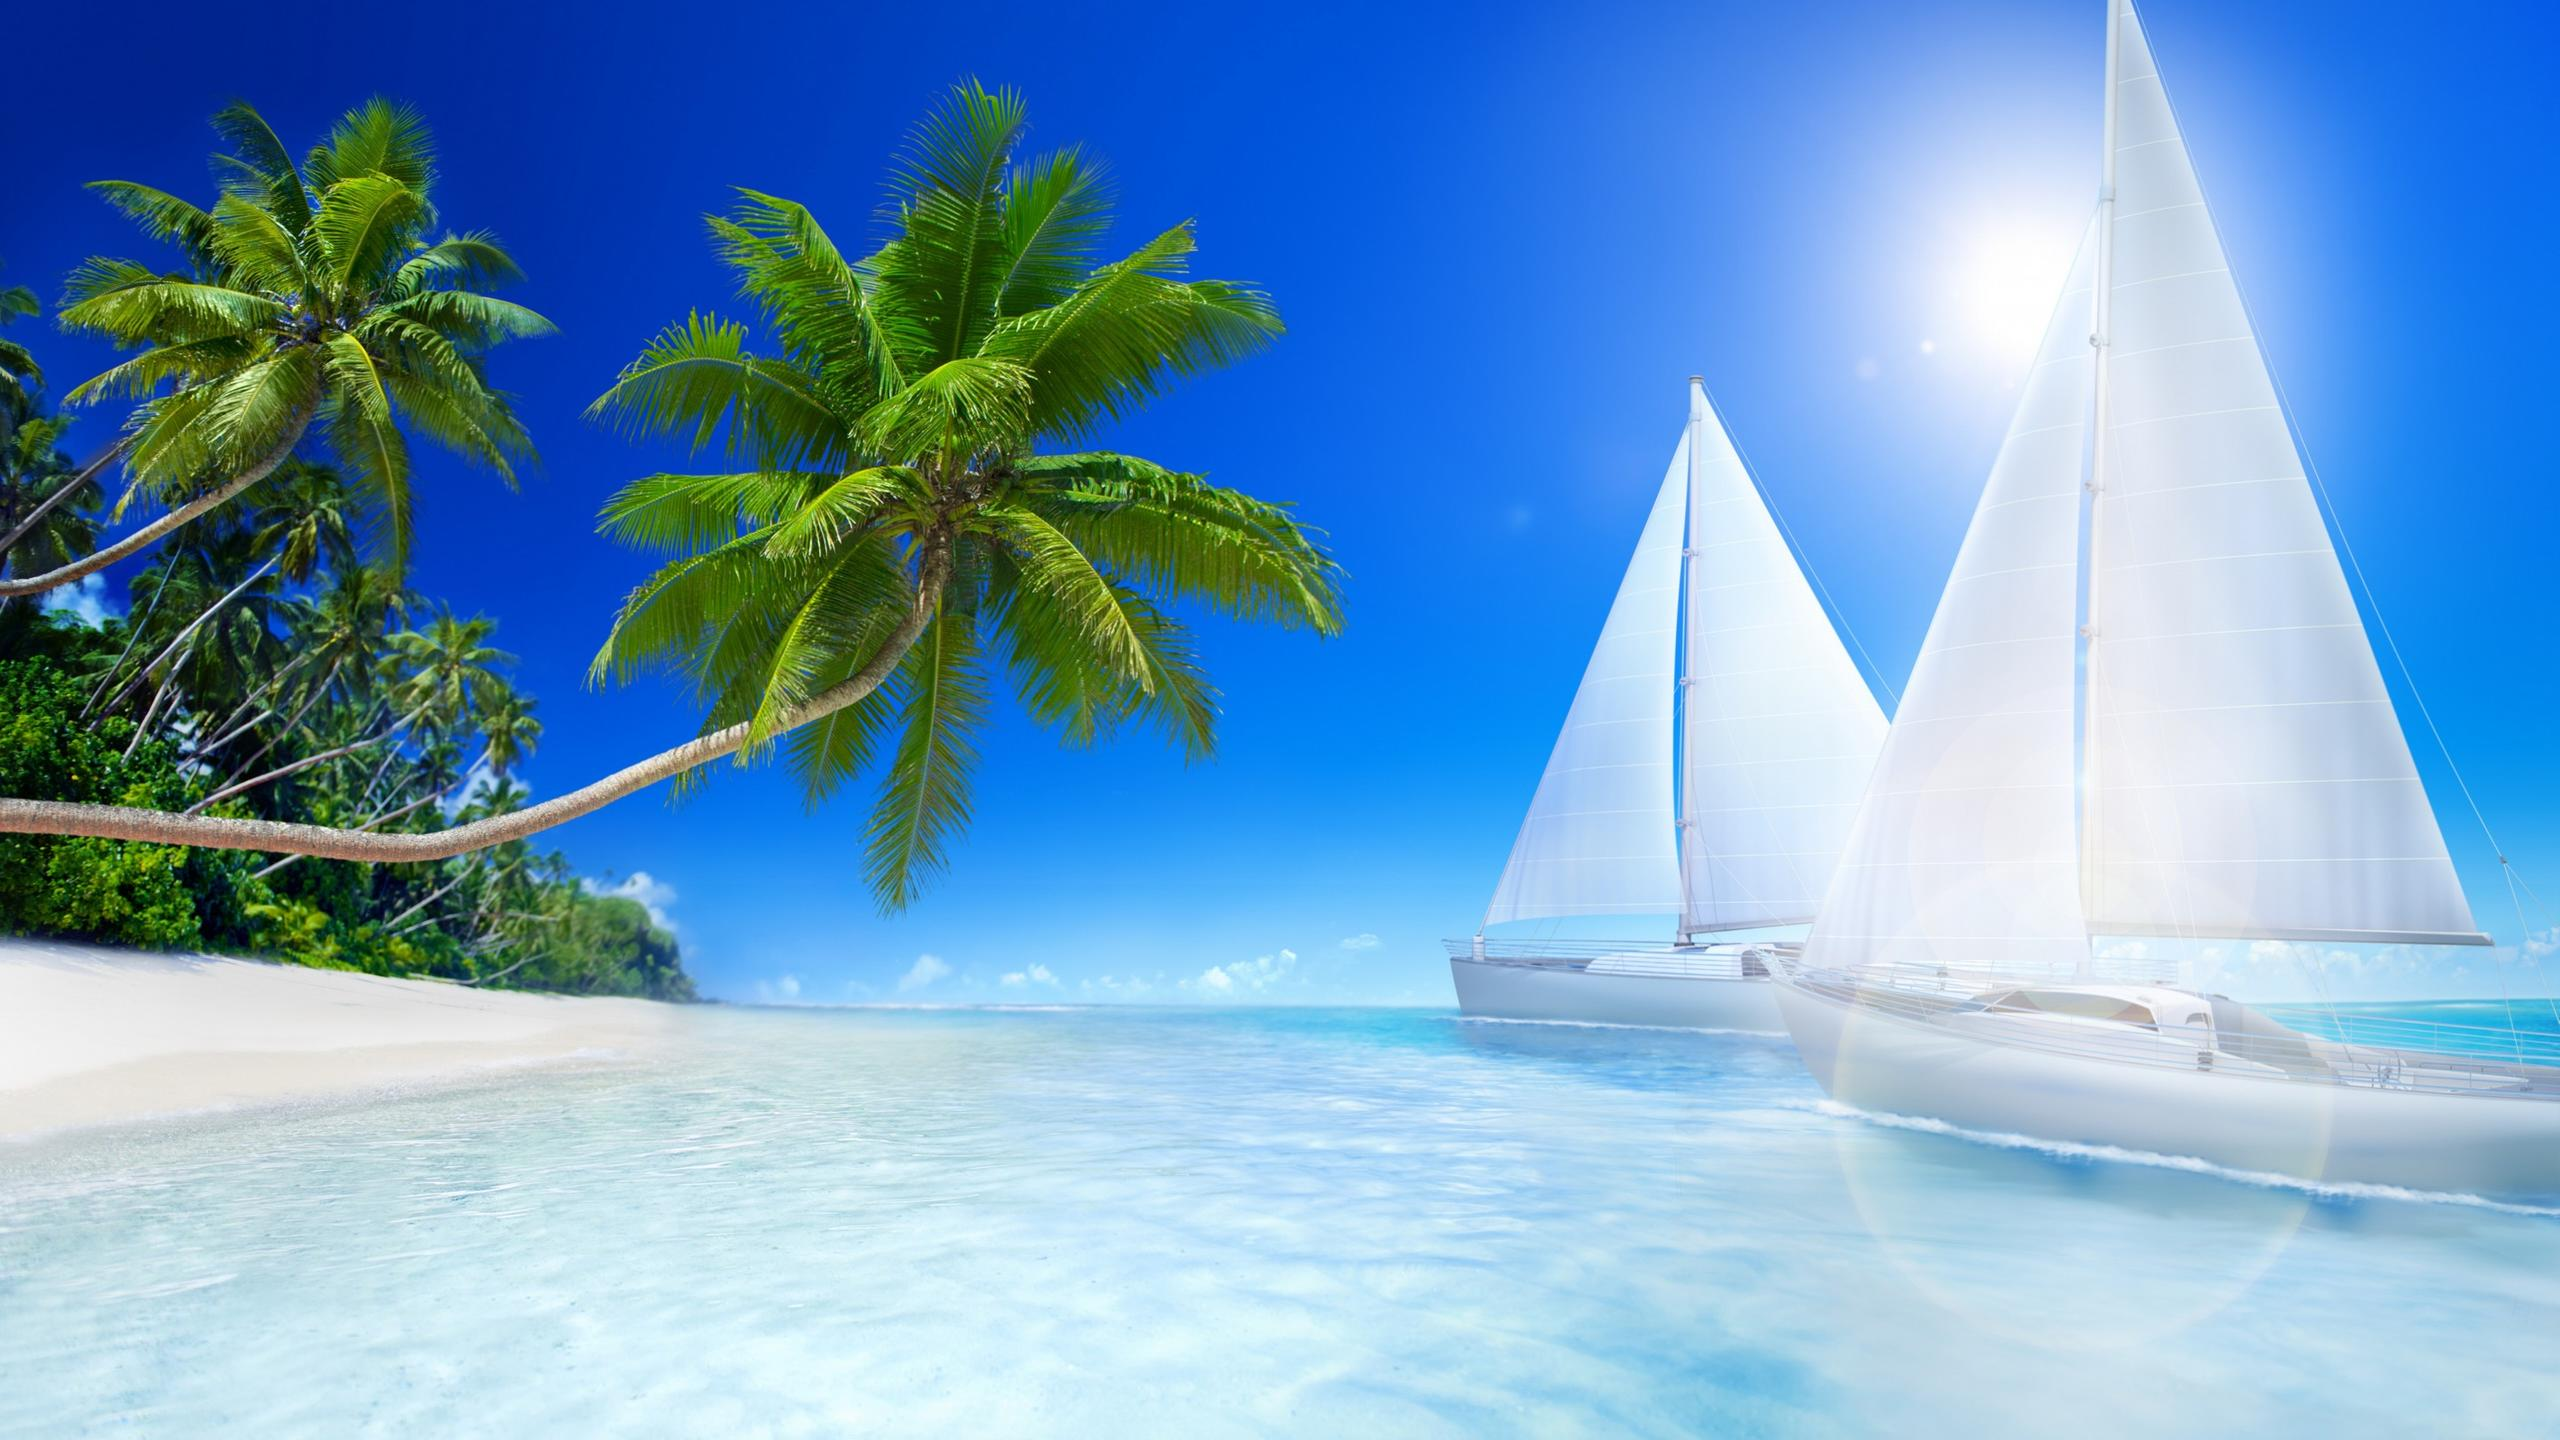 Download Wallpaper 2560x1440 Tropical Beach Palms And Sailboat On The